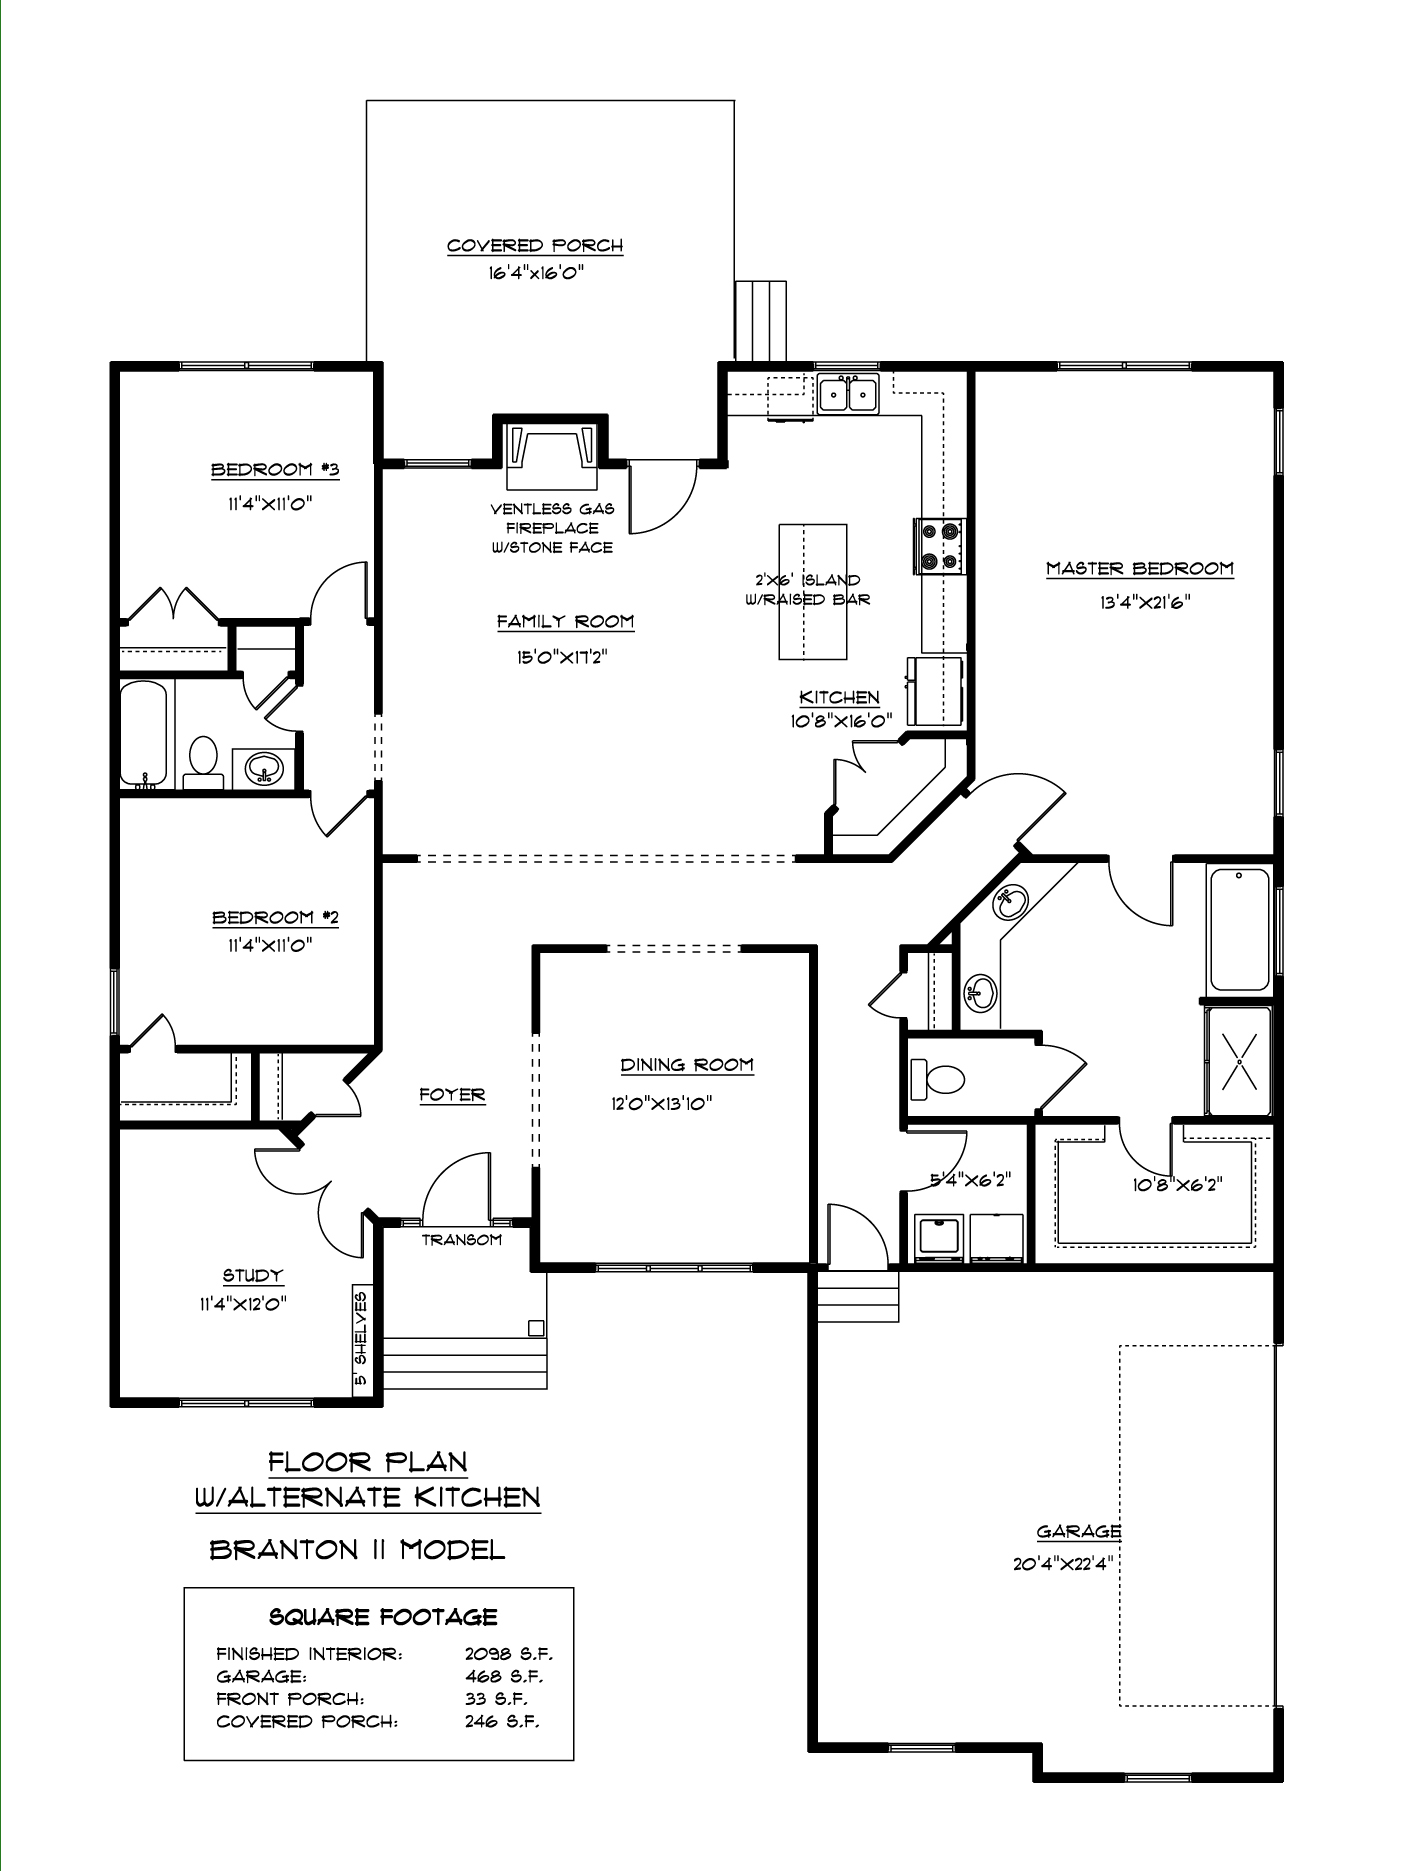 Branton II Alternate Kitchen Floor Plan AB Homes Suffolk VA